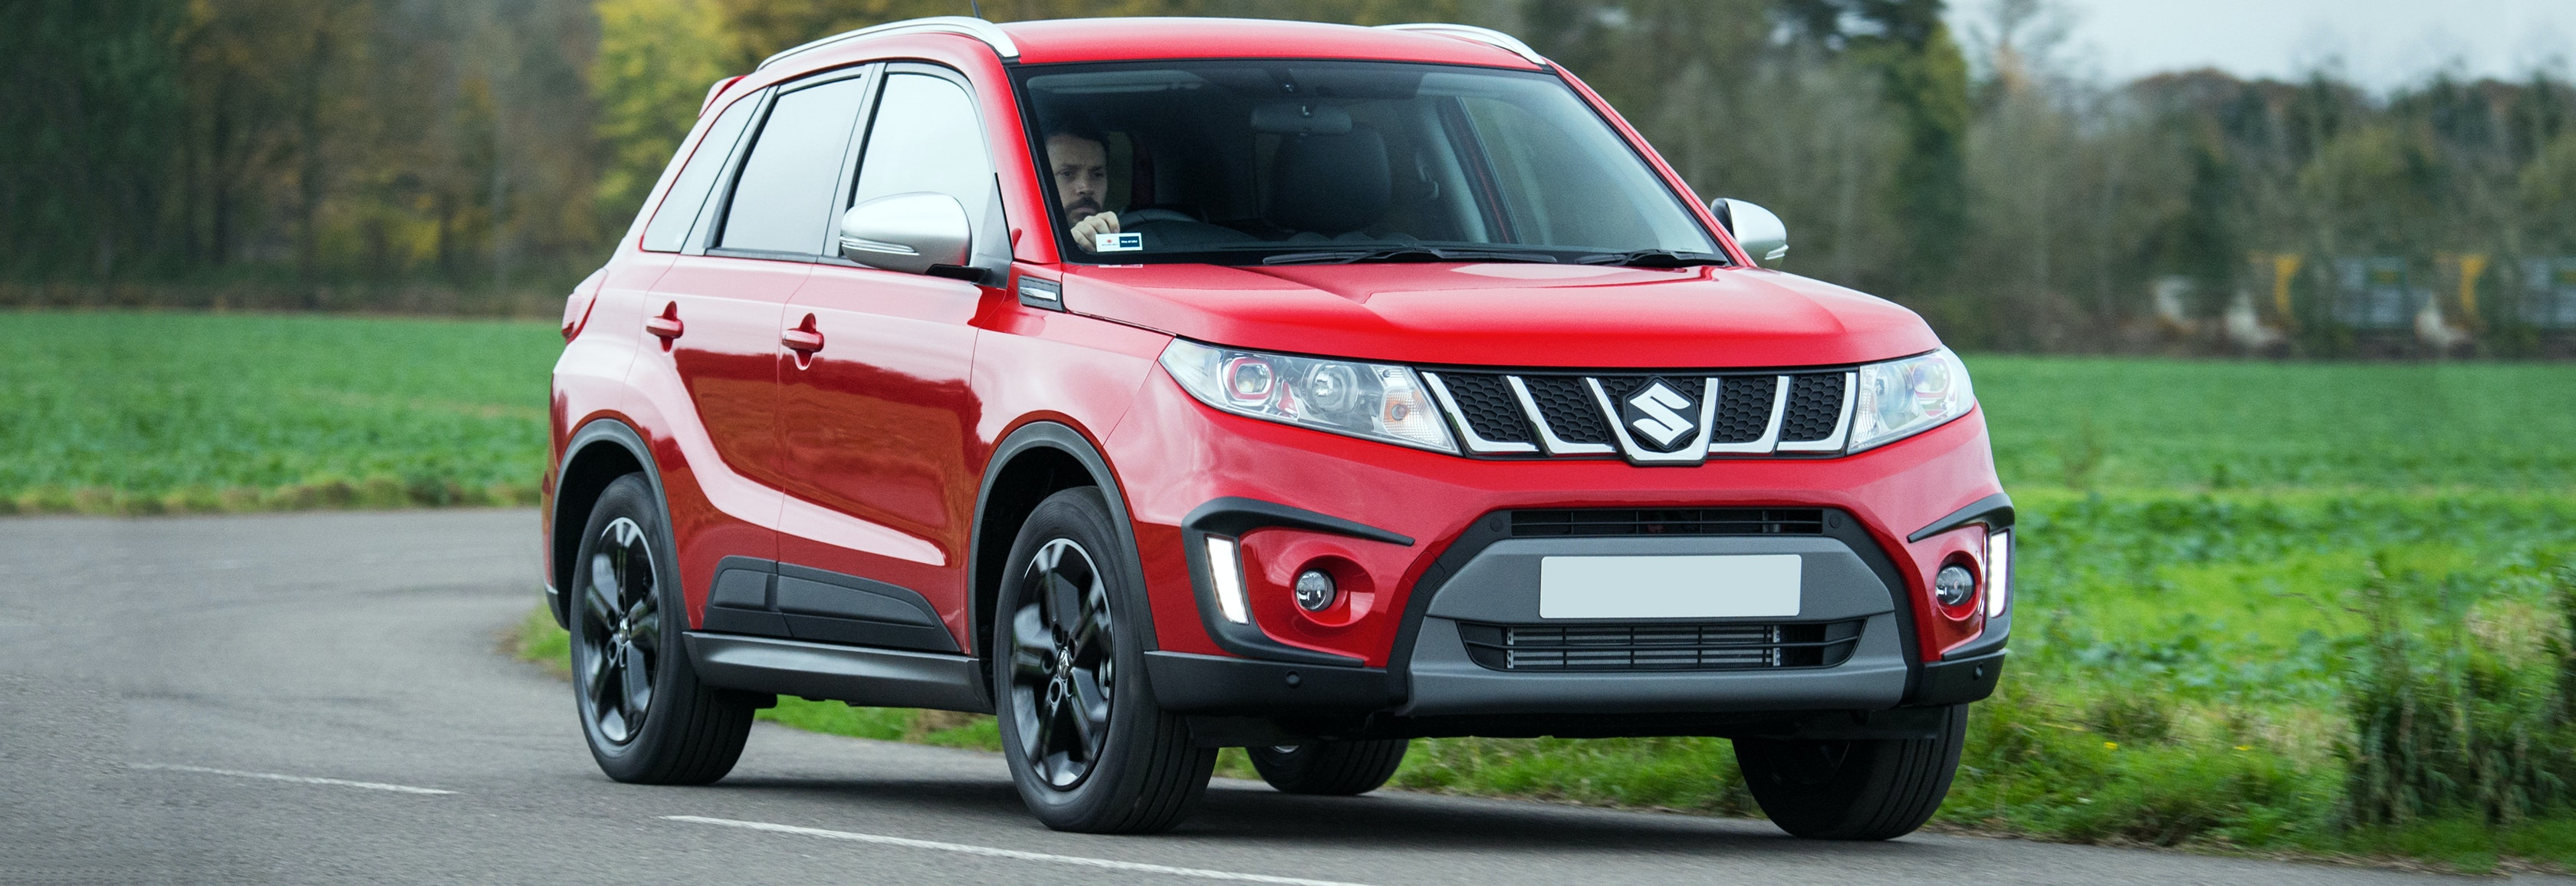 2018 suzuki vitara red driving front cornering